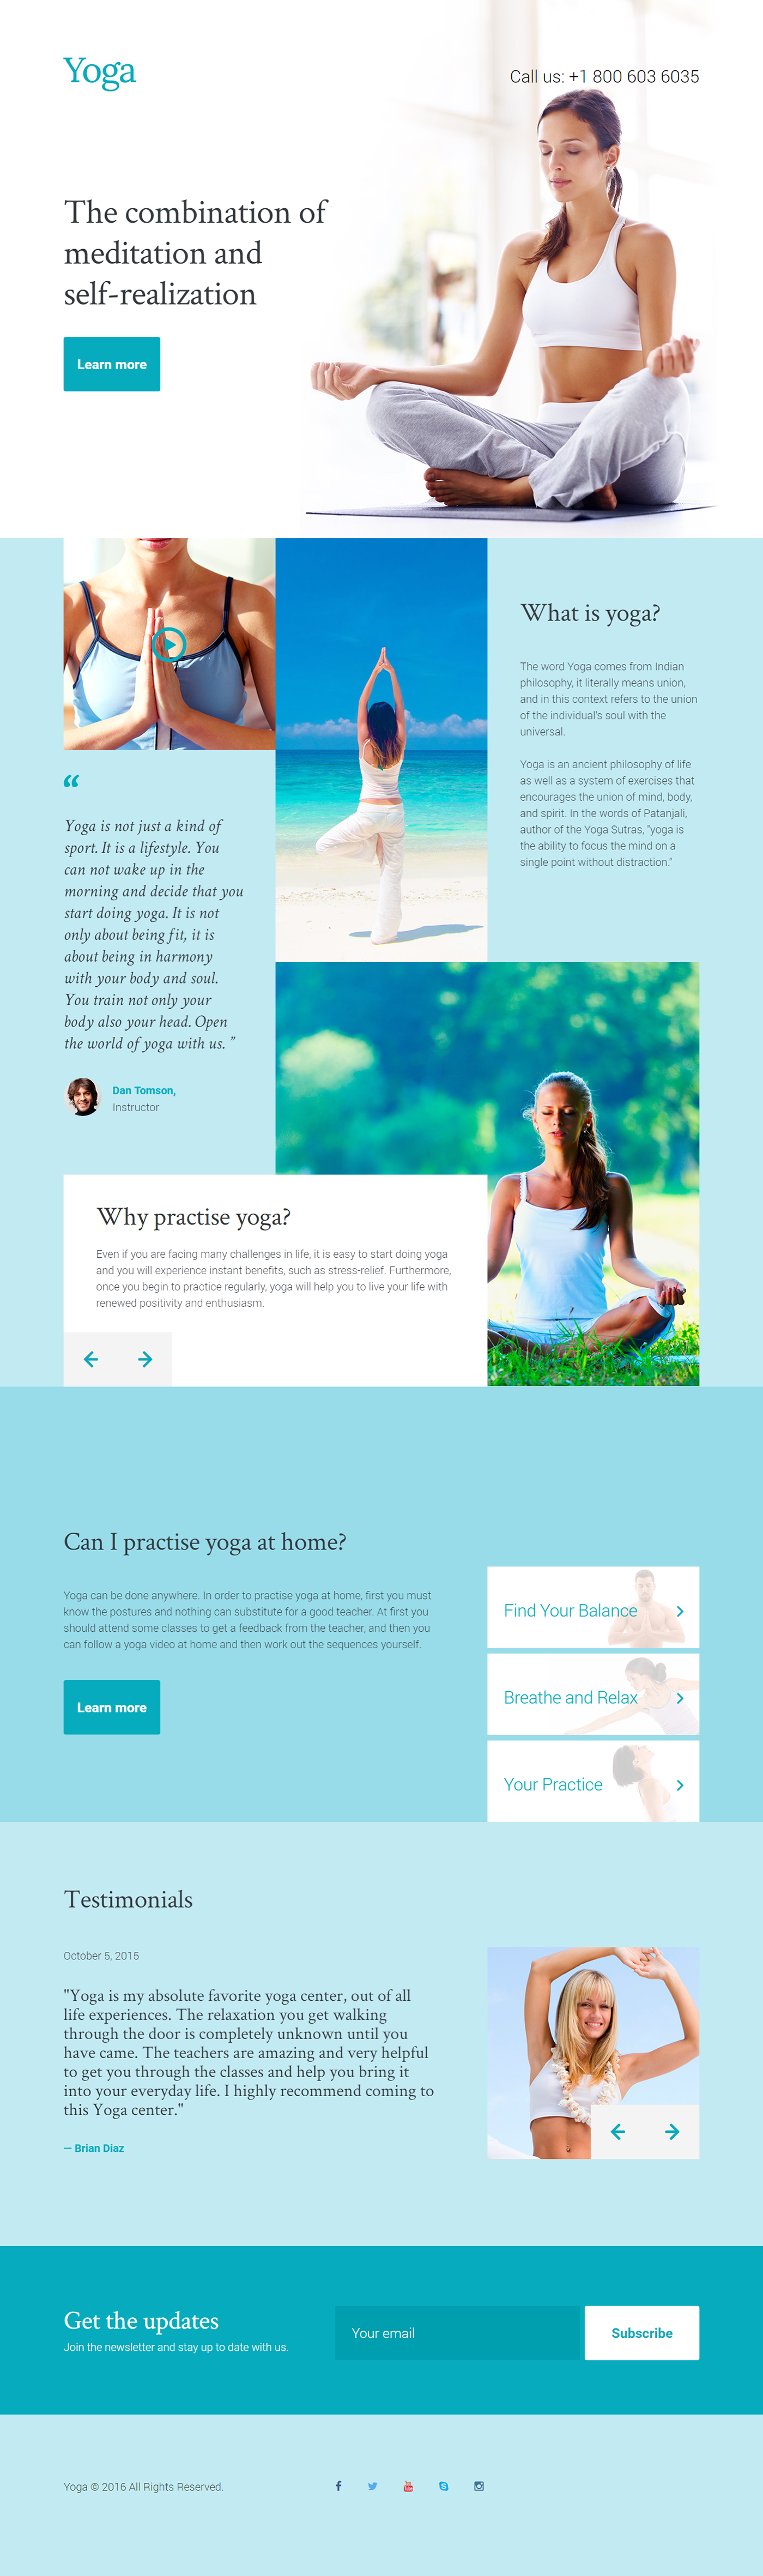 Yoga Club Landing Page Template on Behance | Landing Page Templates ...